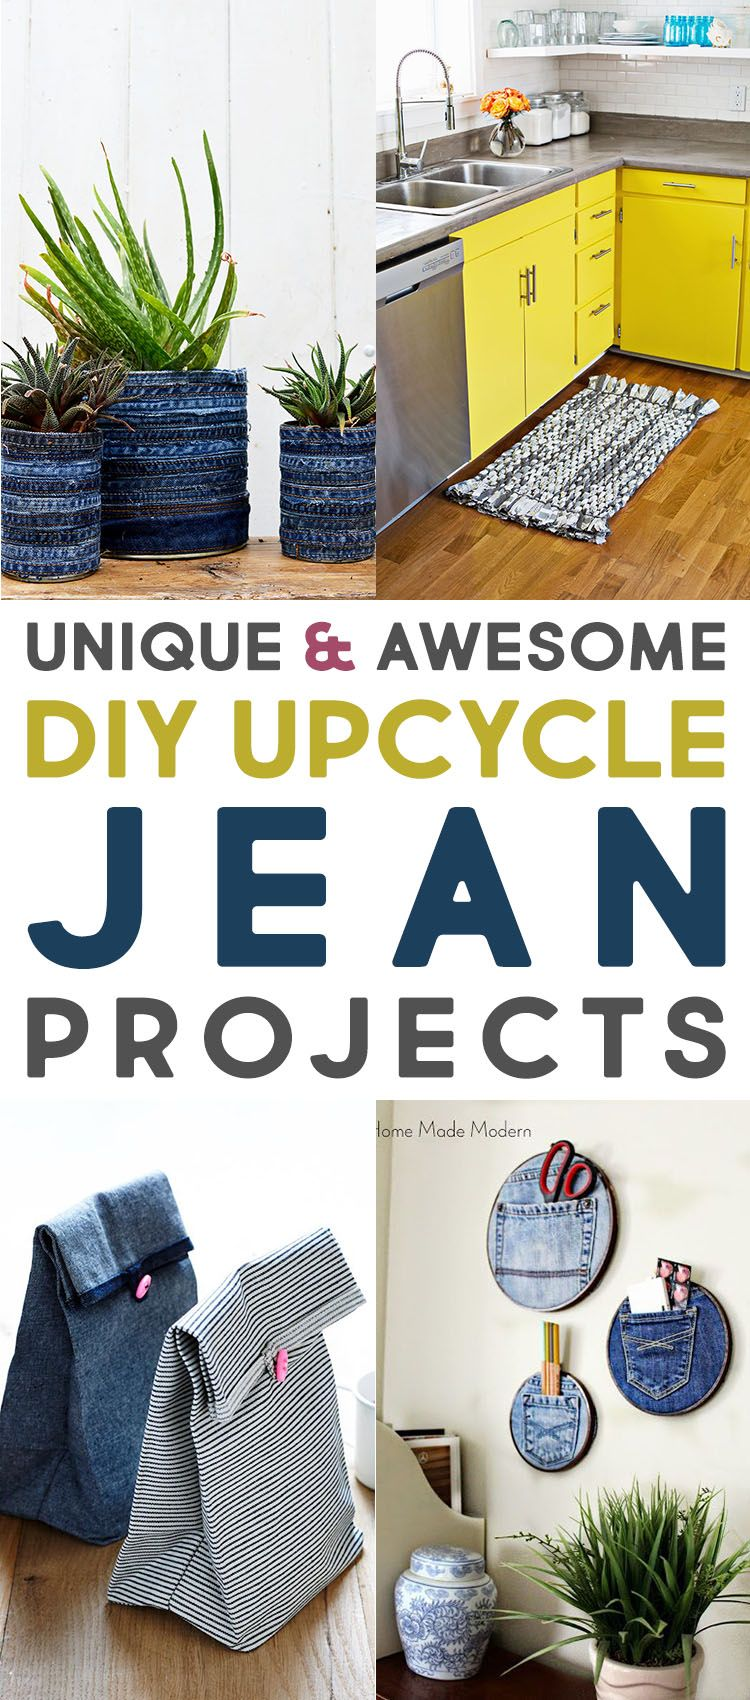 Unique and Awesome DIY Upcycle Jean Projects #recycledcrafts